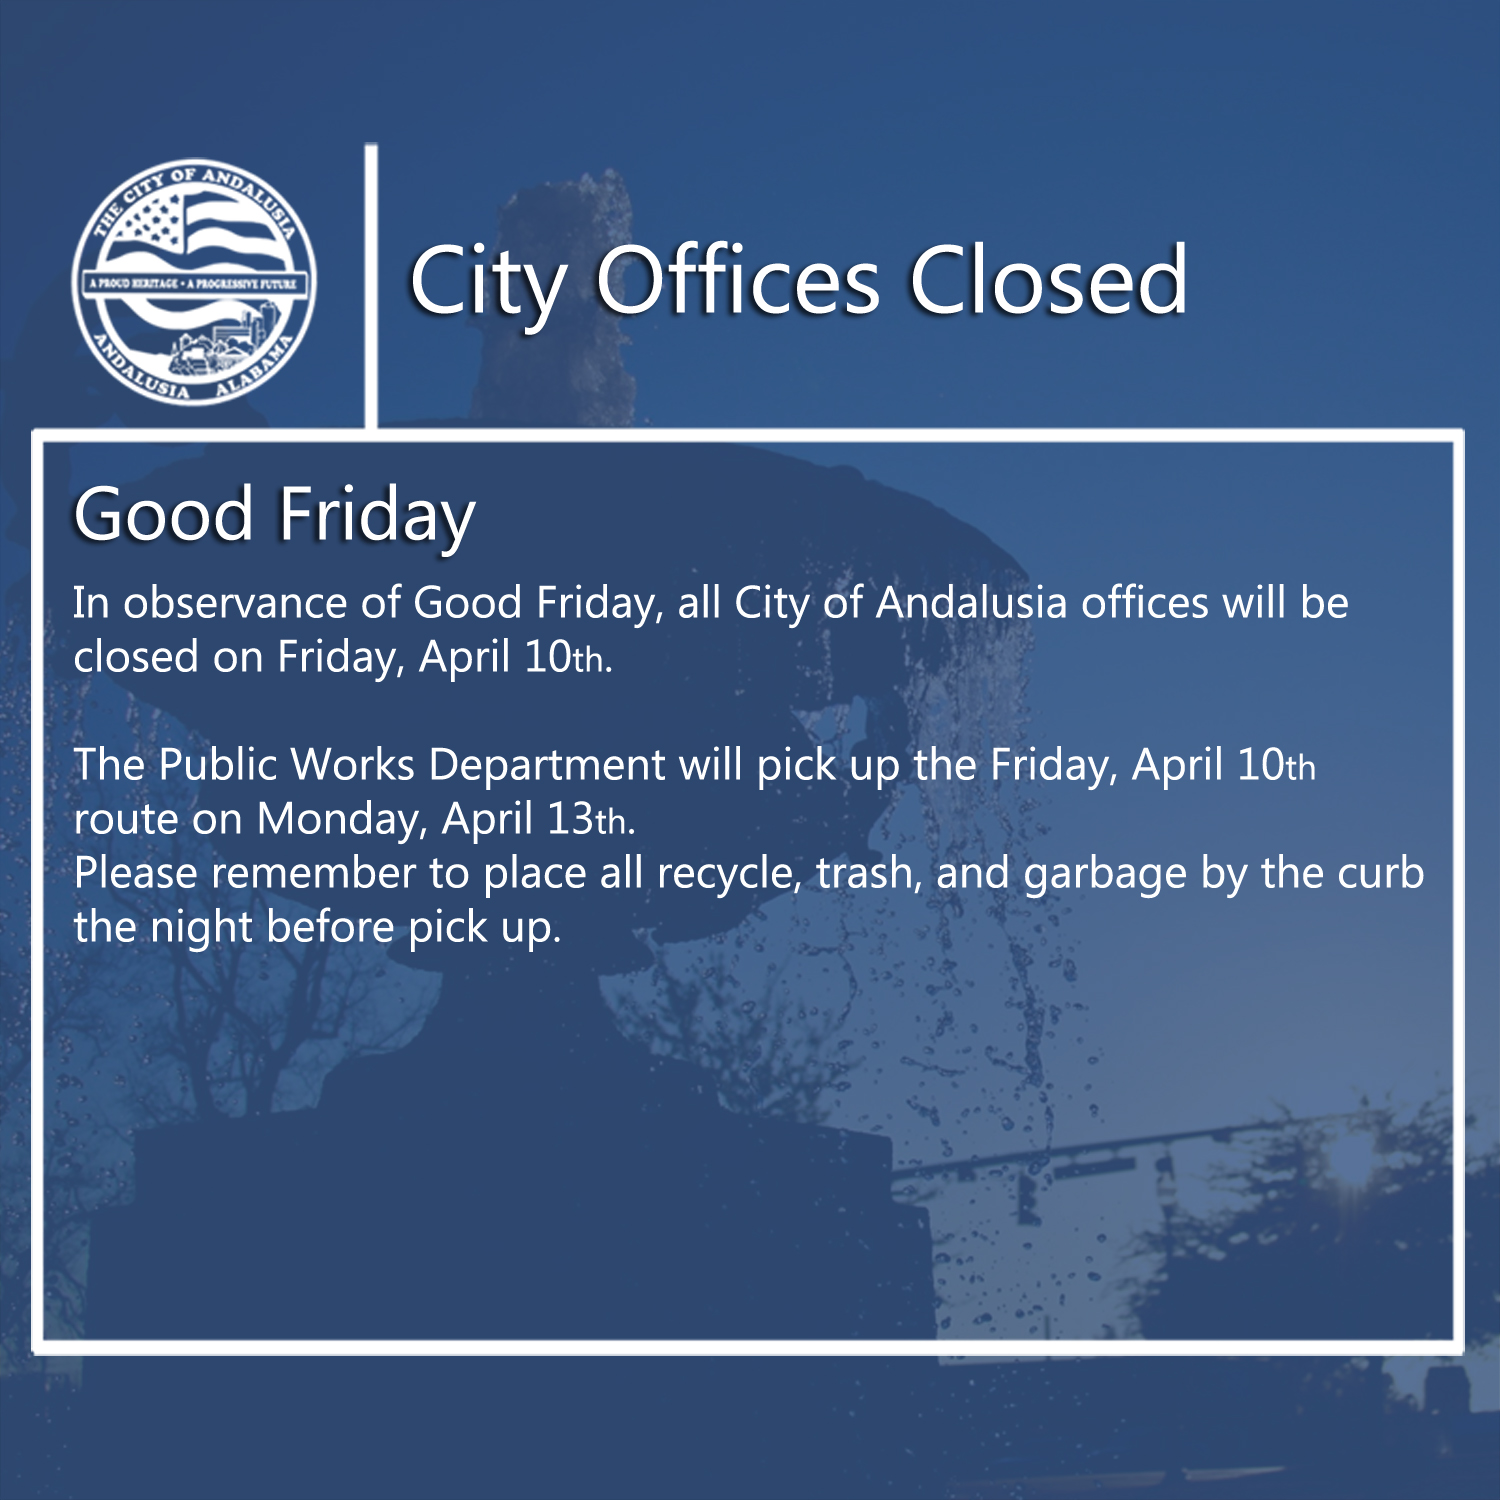 Facebook City Offices Closed April 10th